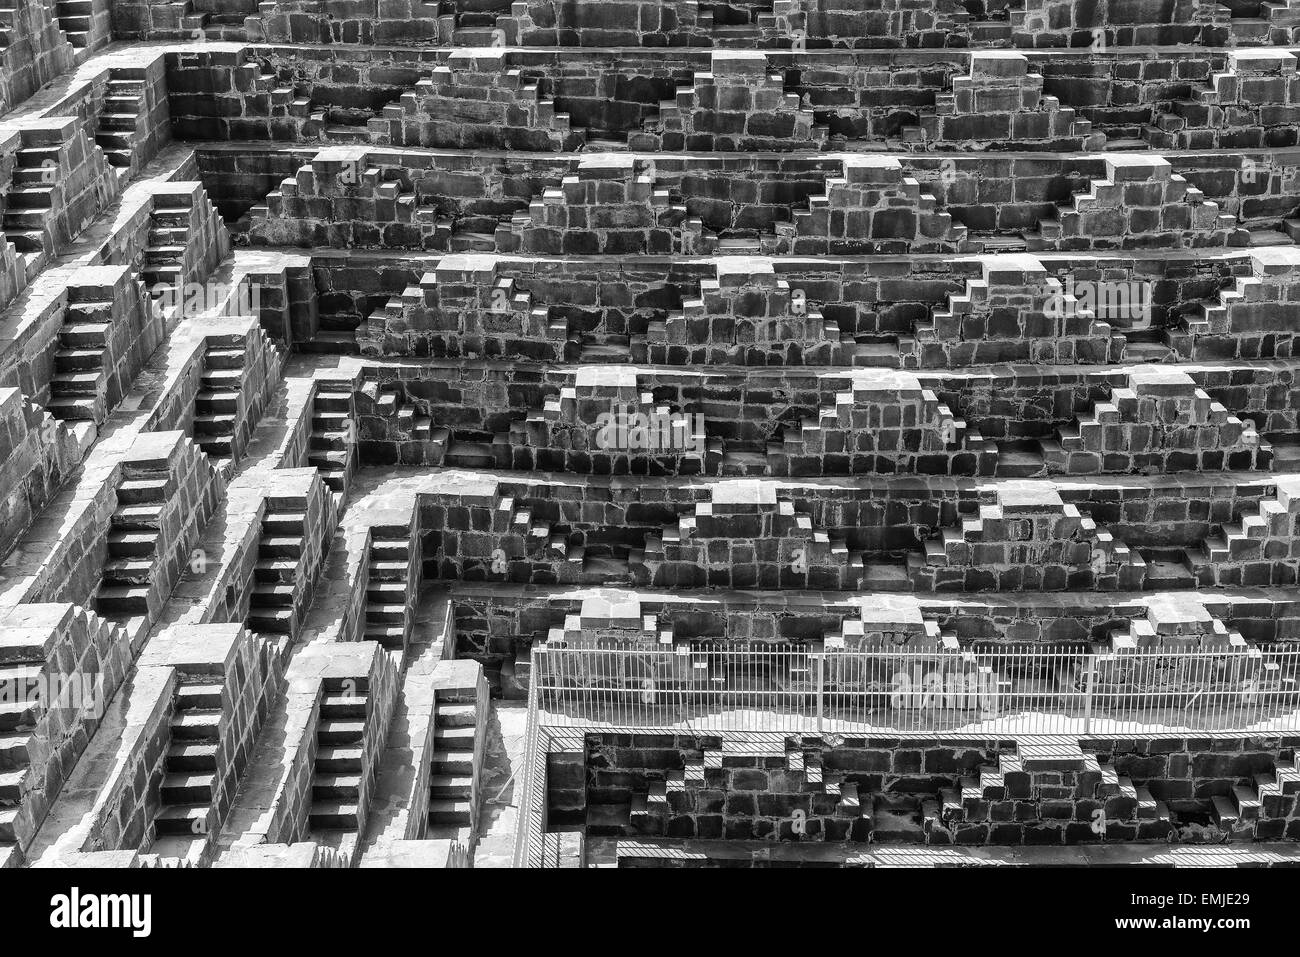 Giant stepwell in rajasthan, india, Black and white - Stock Image